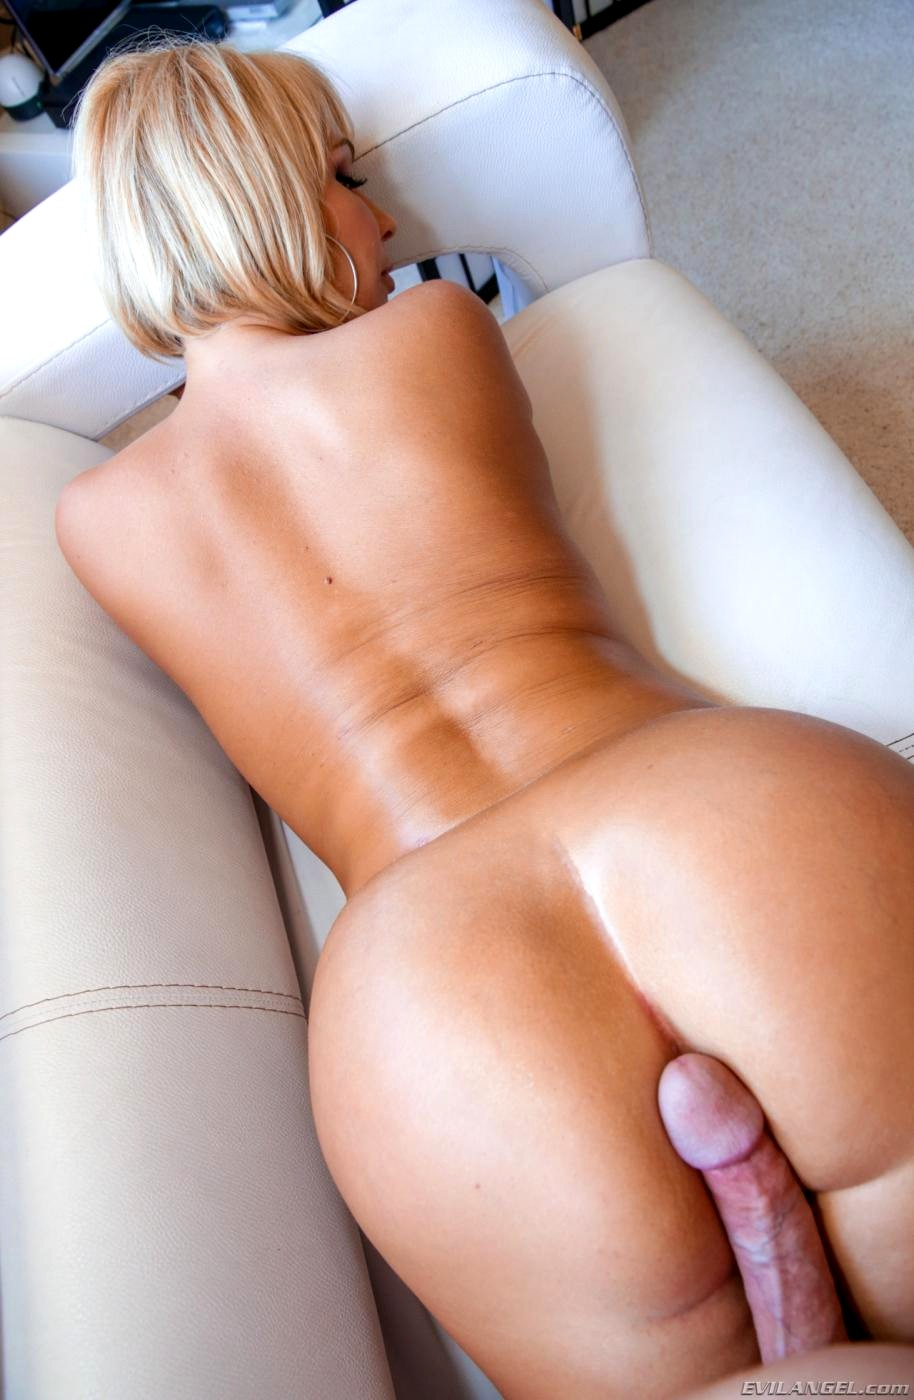 Amazing ass pounded - prone bone